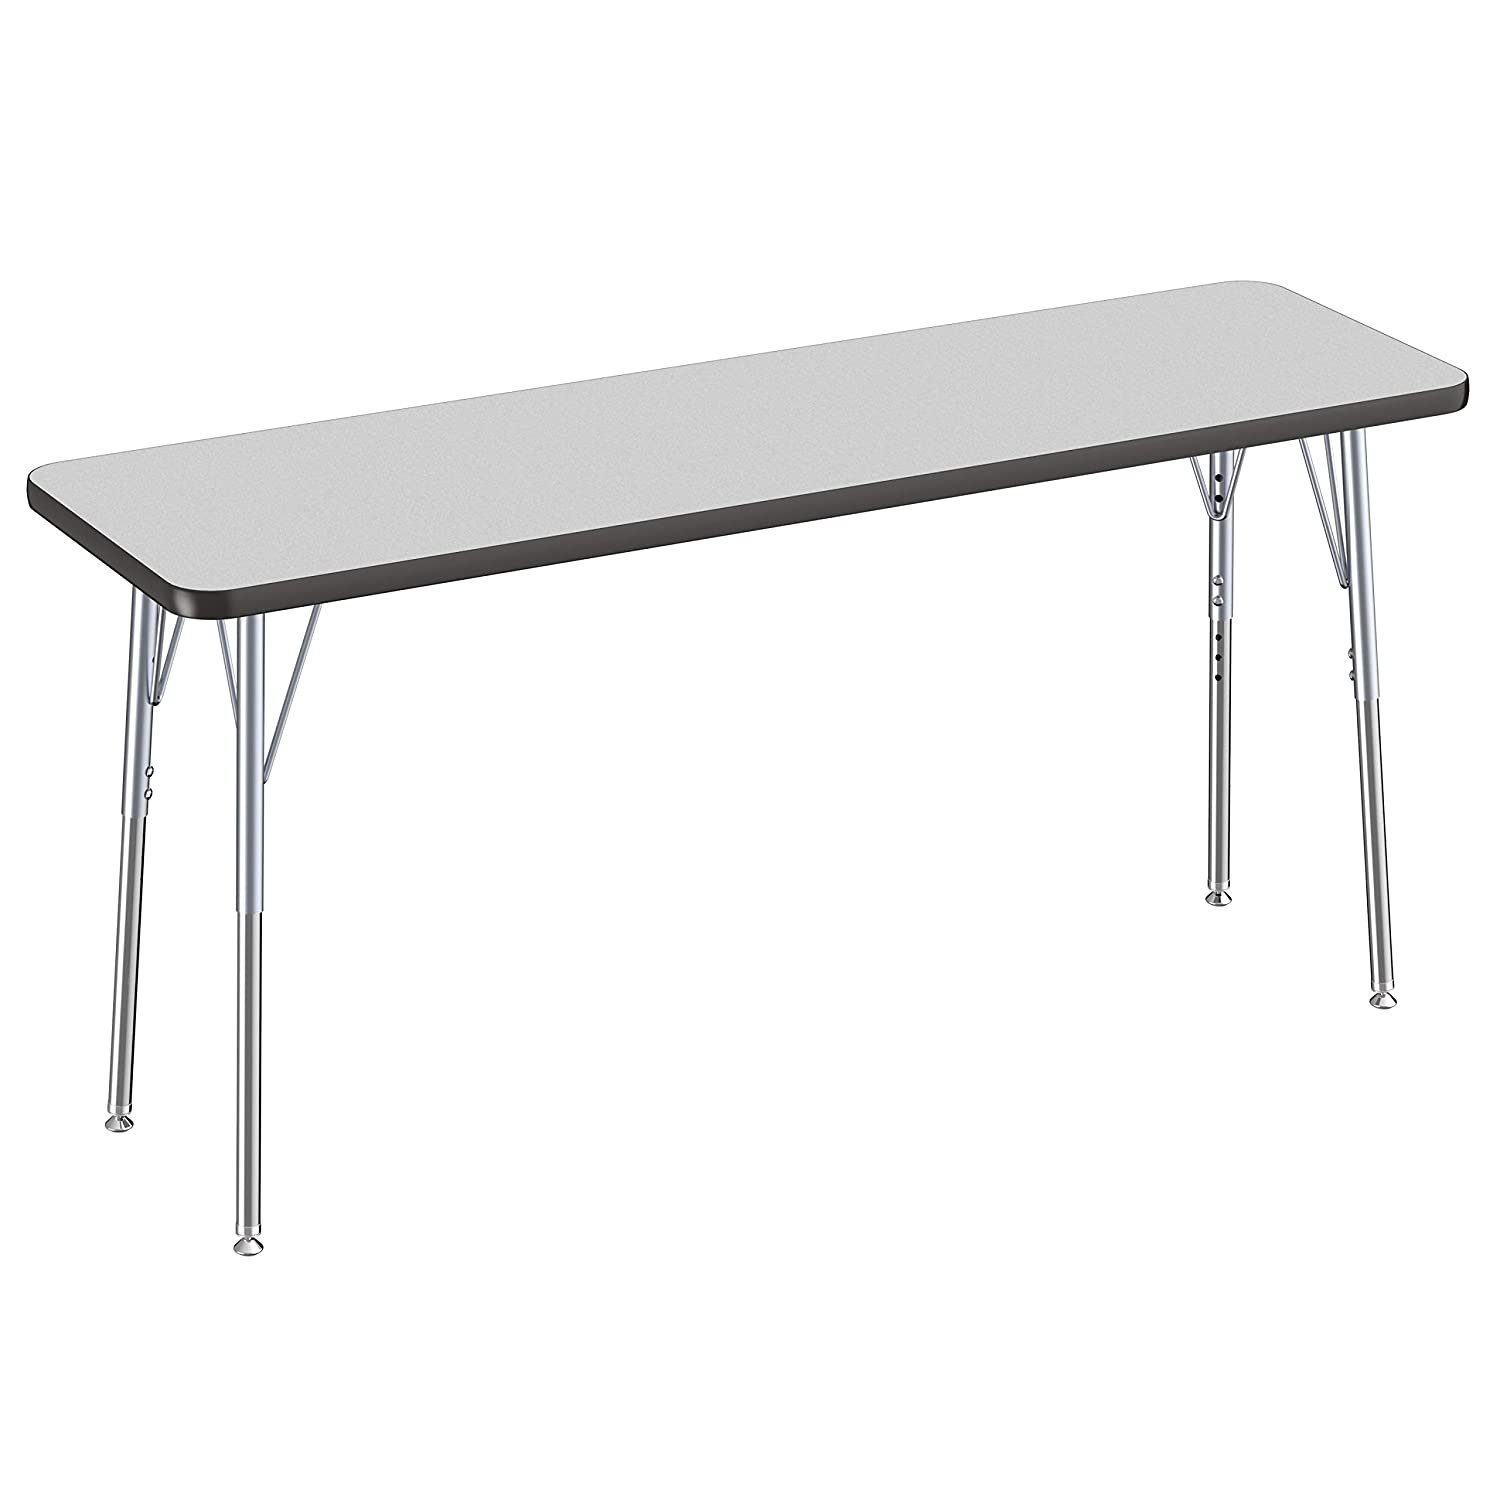 Adjustable Height 19-30 inches Standard Legs with Ball Glides Maple Top and Black Edge 24 x 36 inch FDP Rectangle Activity School and Office Table